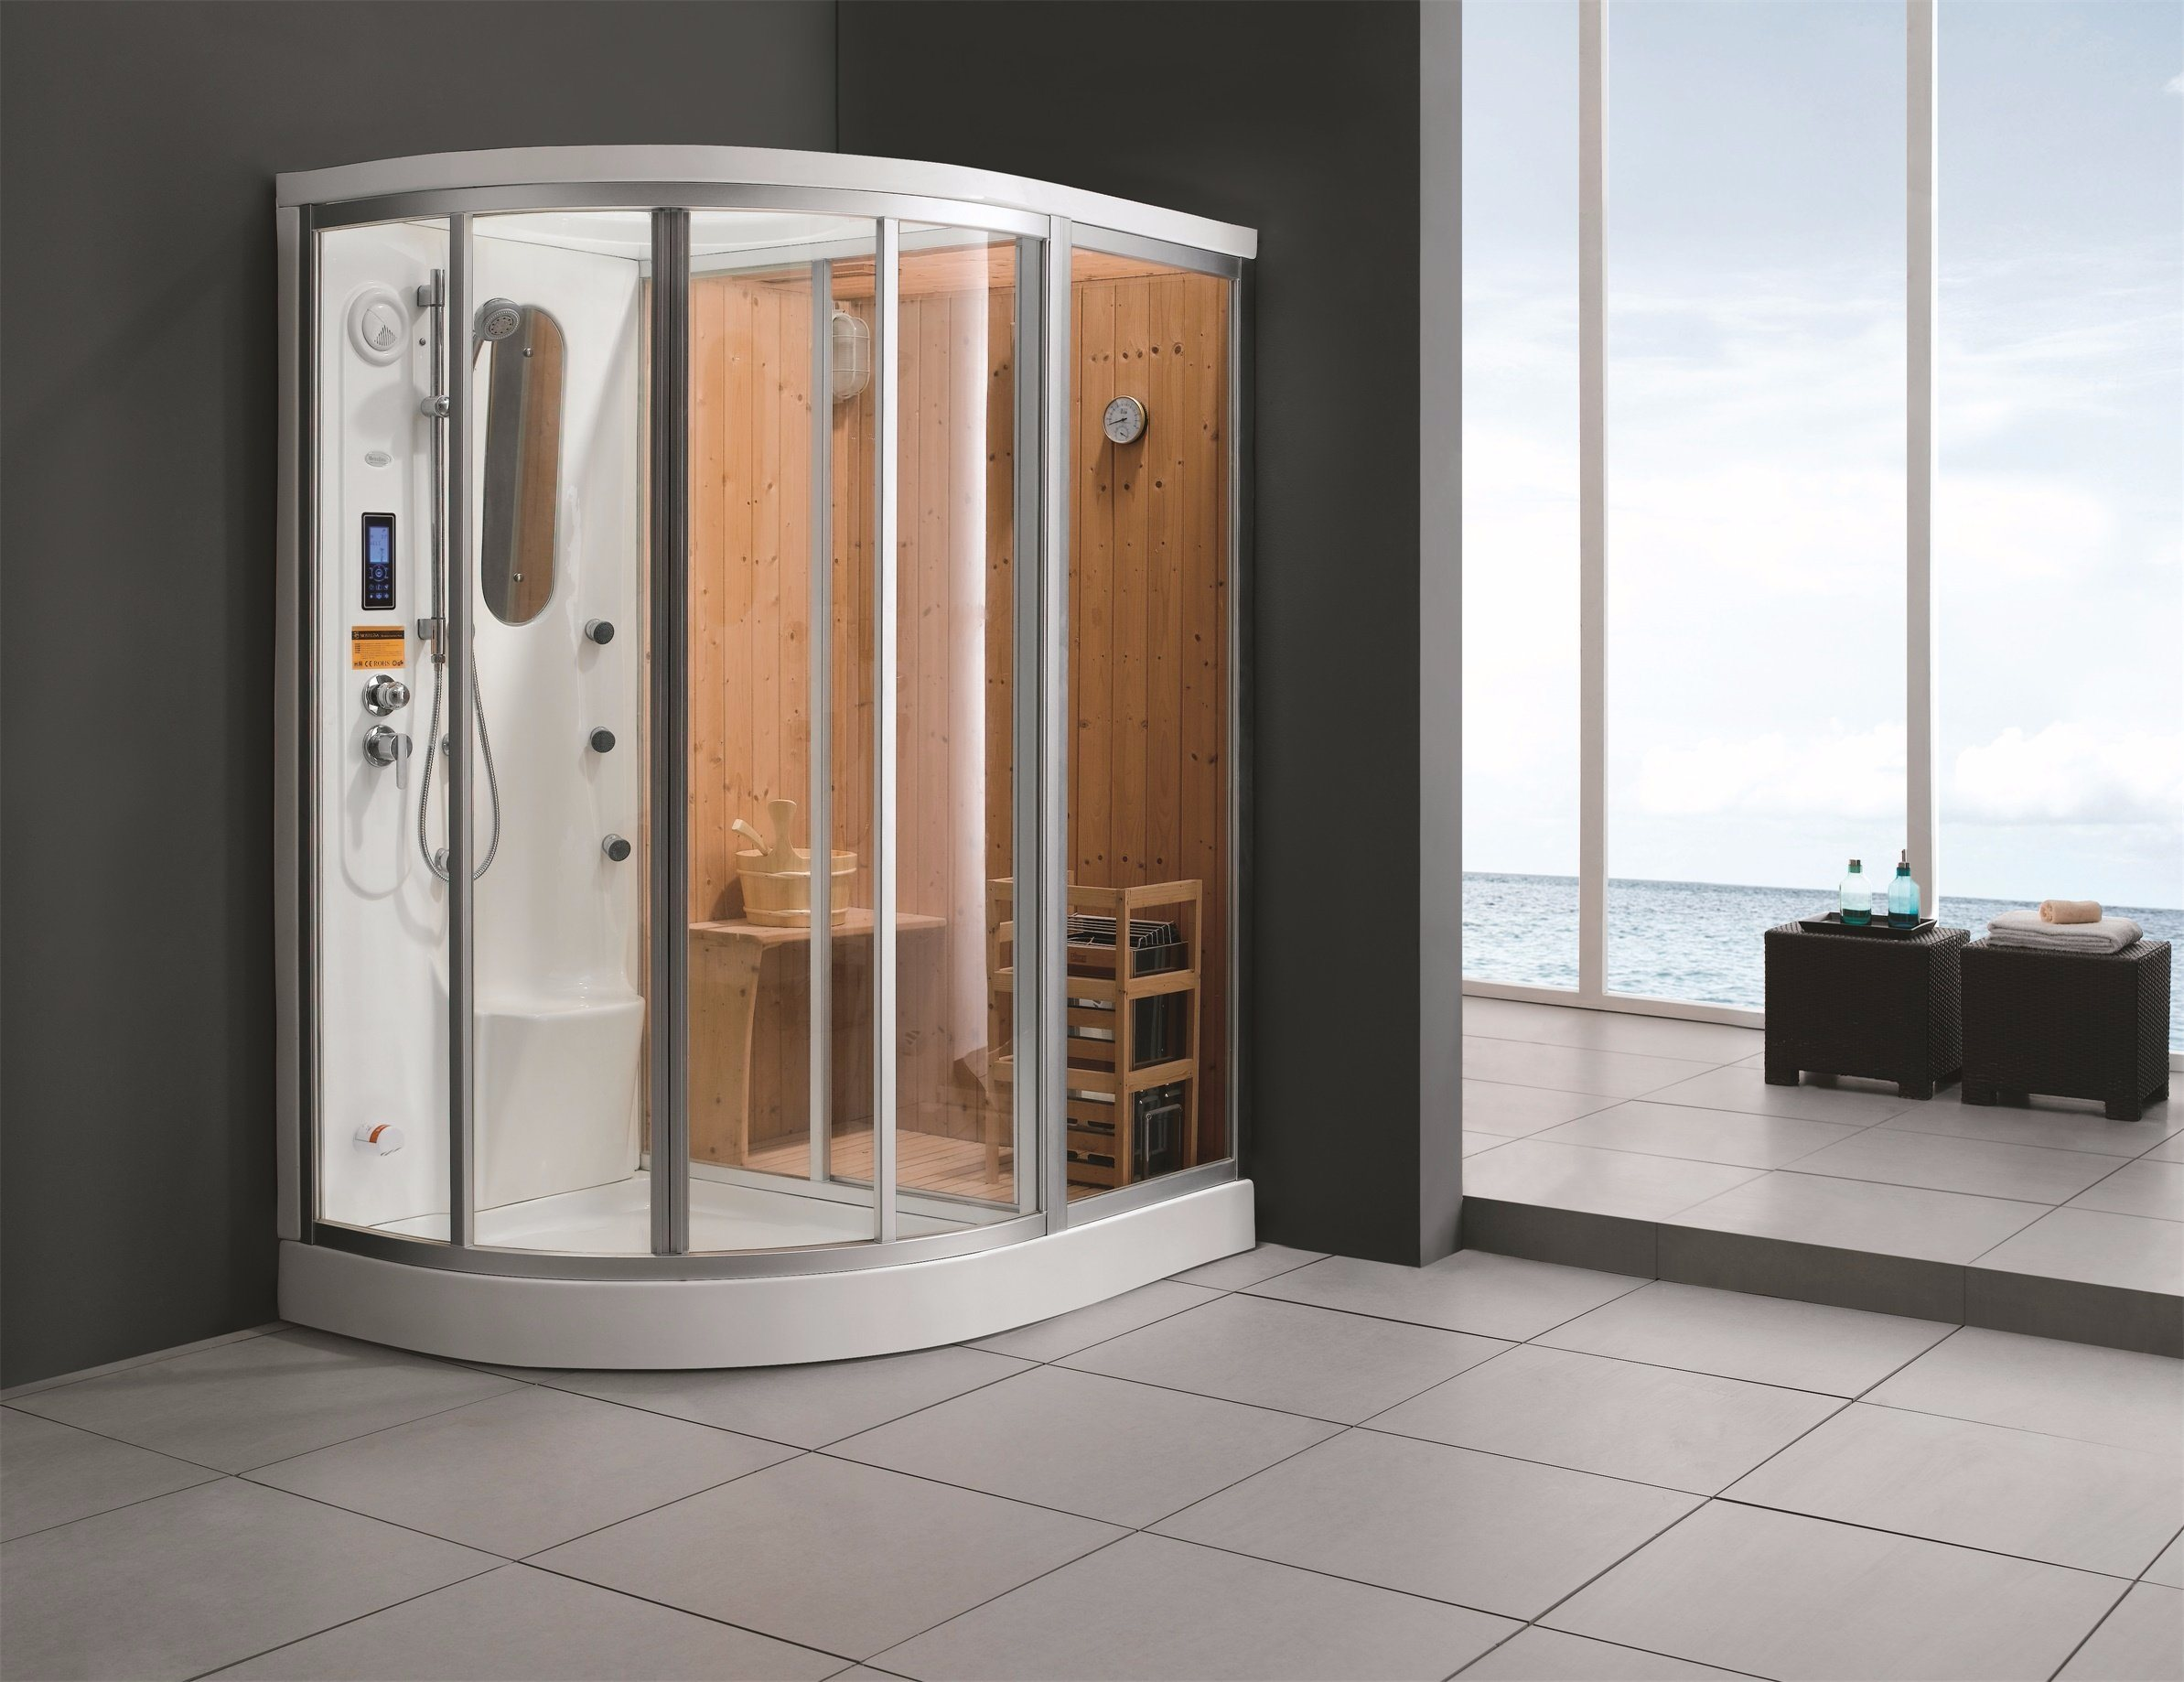 install unit how picture shower unithow generator size a kithow of full sofa ideas remarkable installm steam to